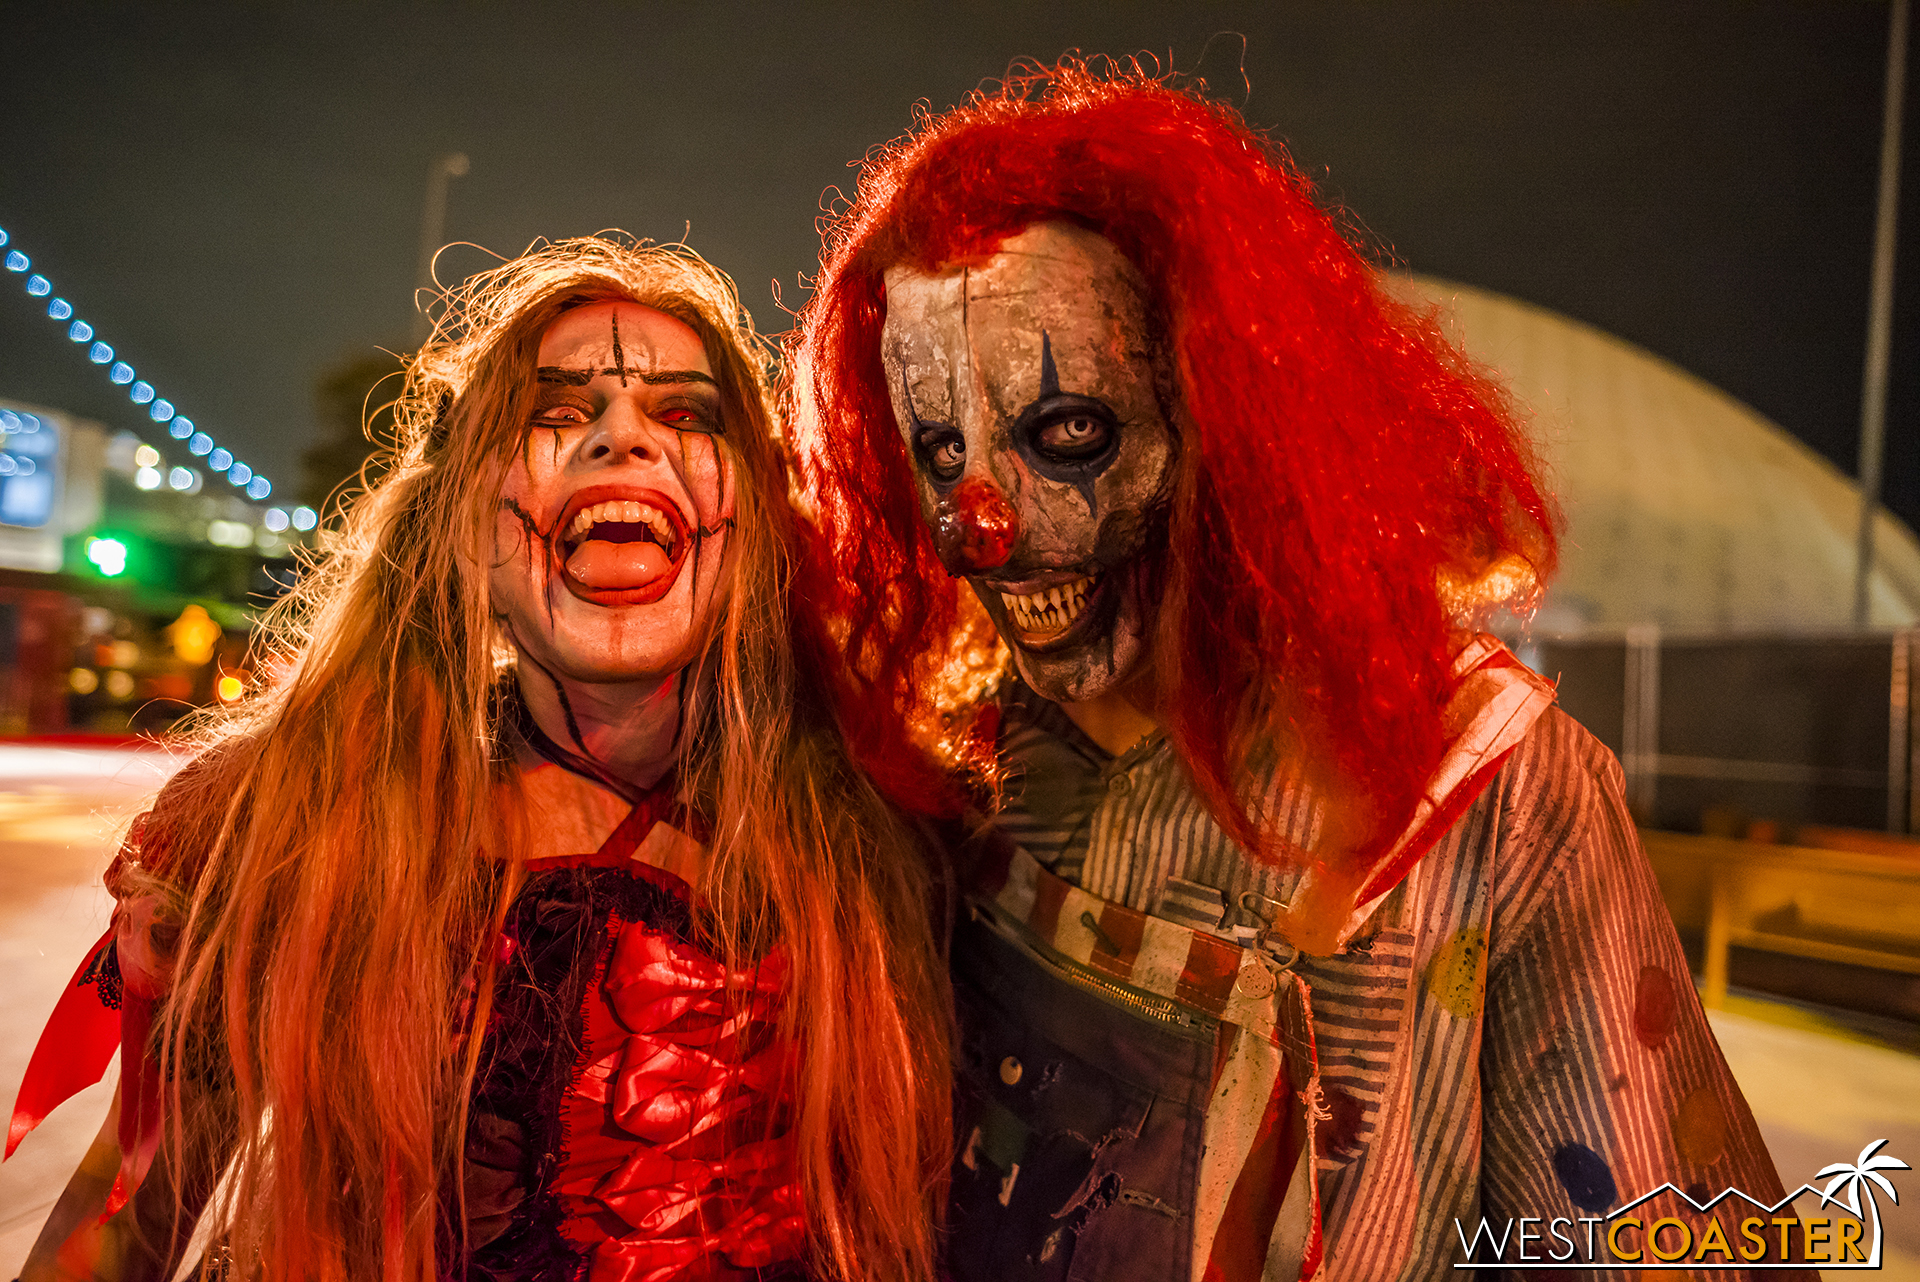 Love all the Dark Harbor street monsters.  They're so fun and sadistic at the same time!